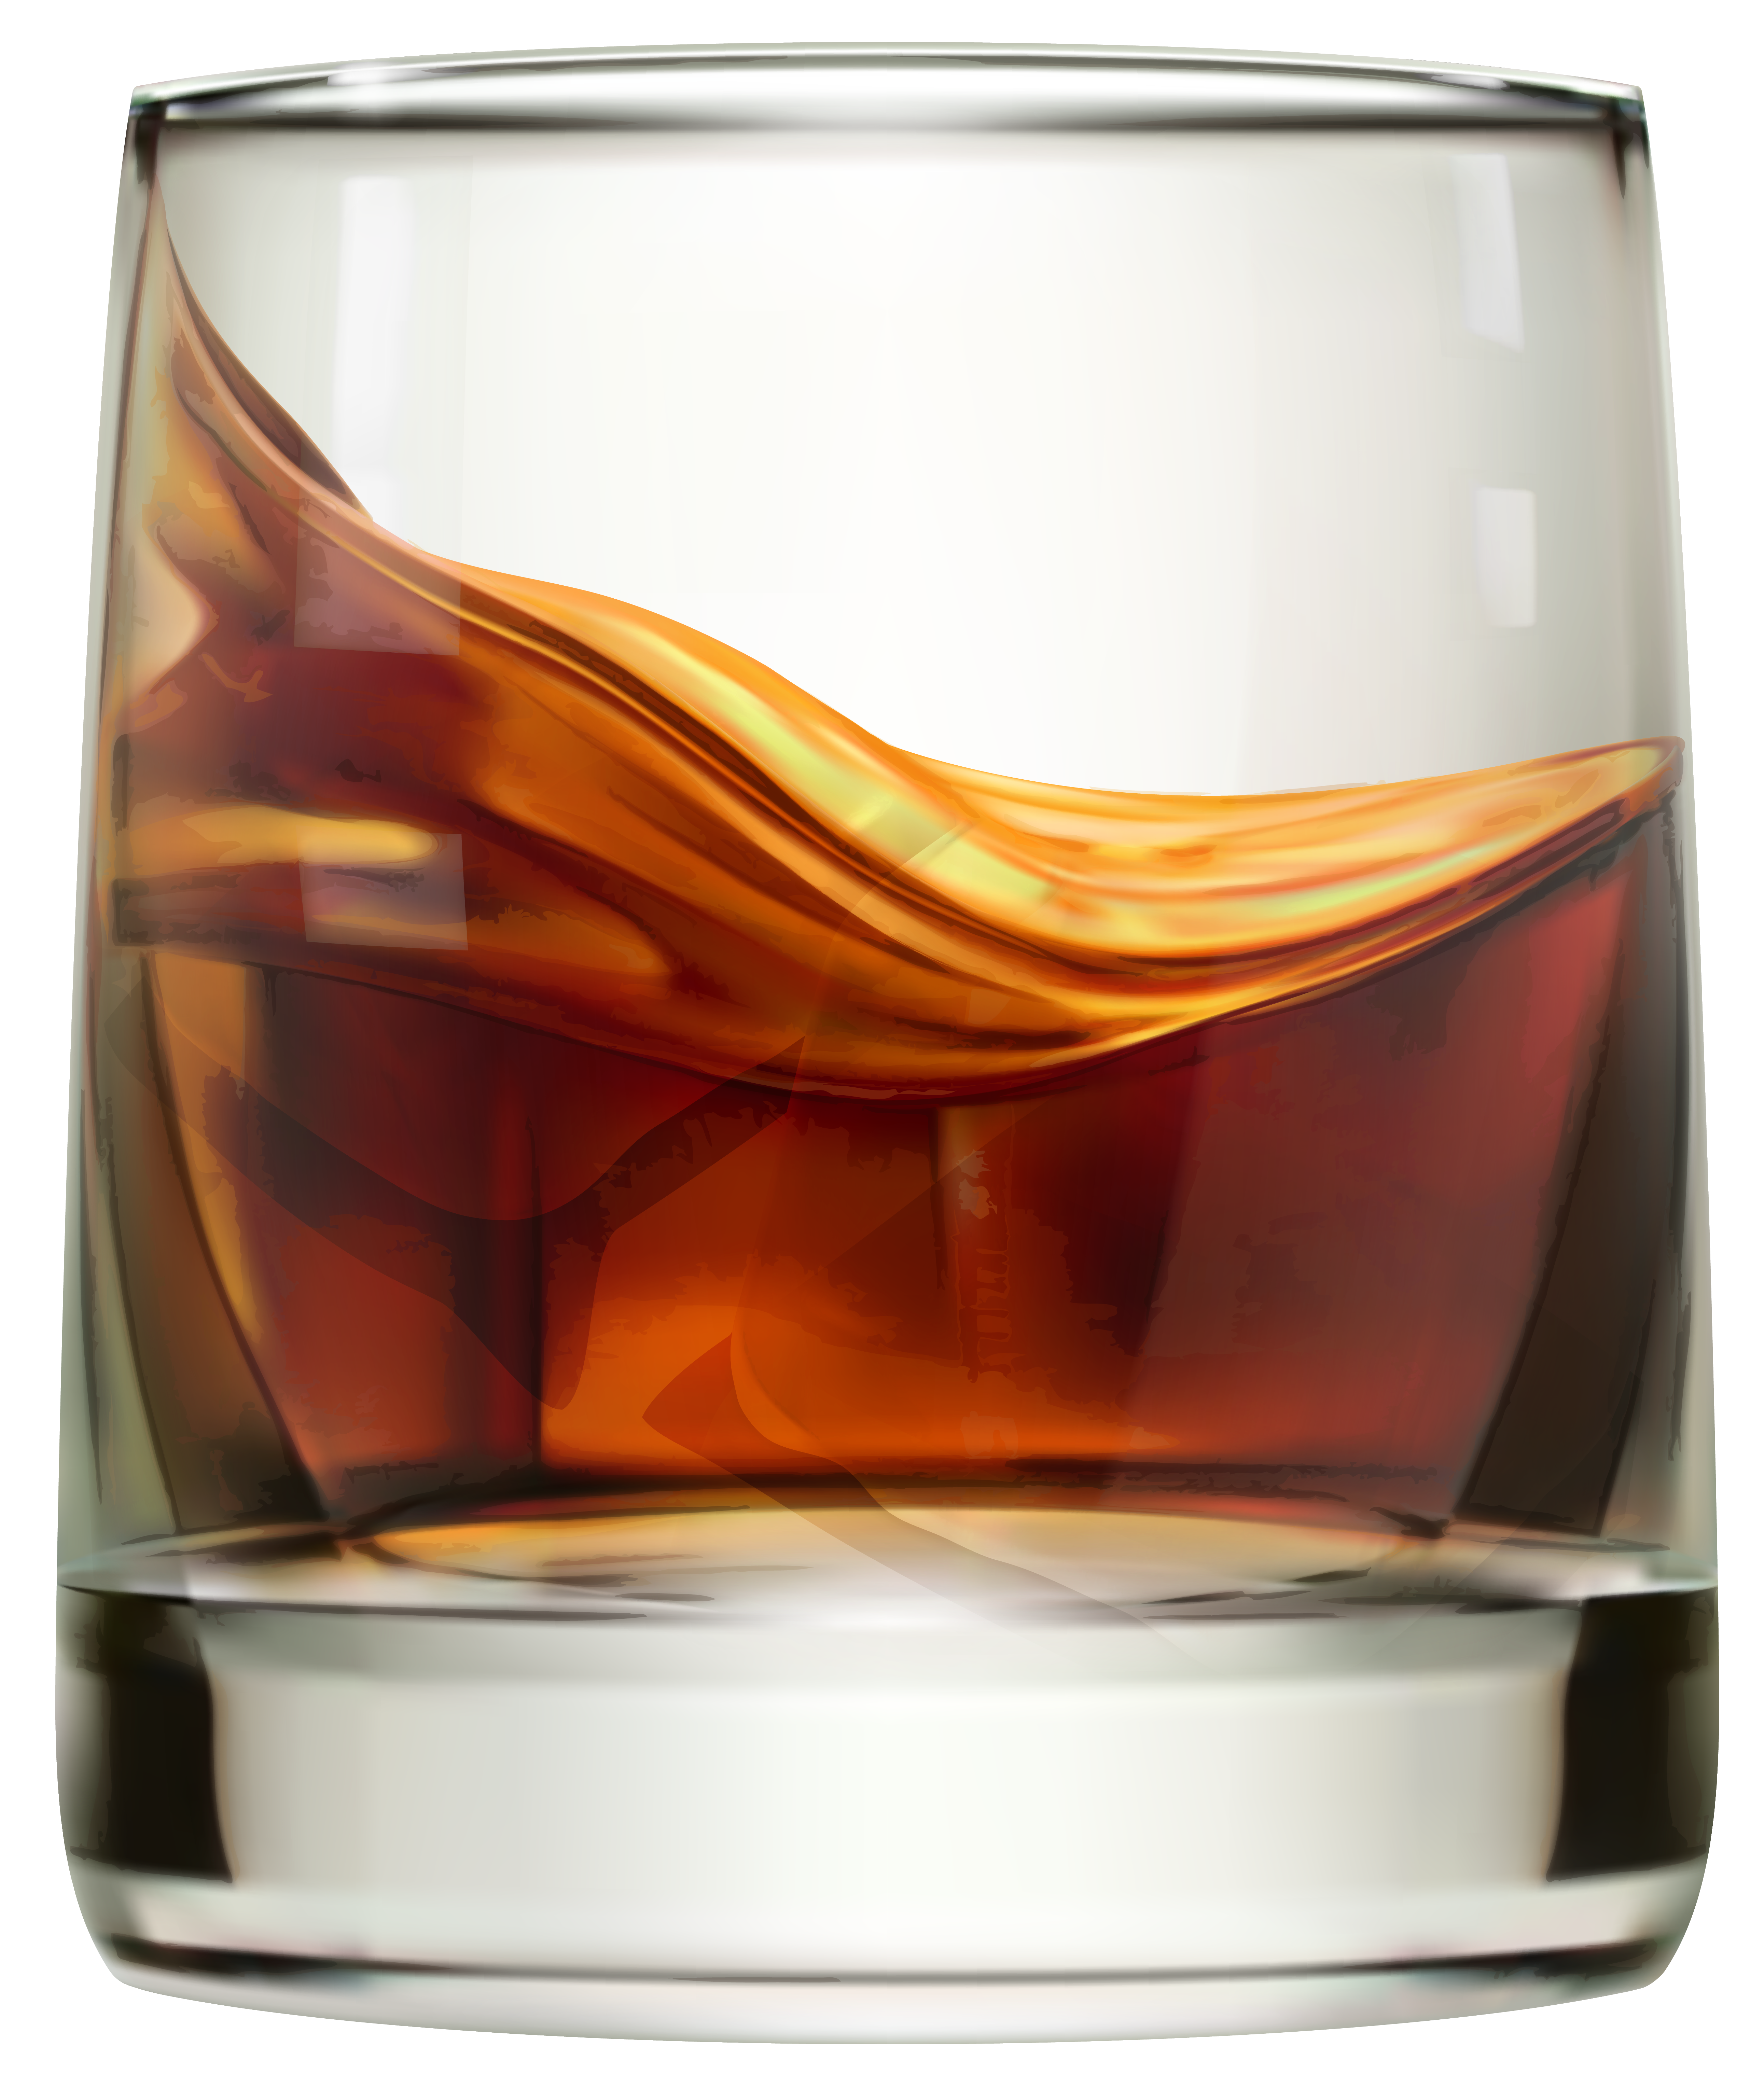 Whiskey glass png. Clip art image gallery